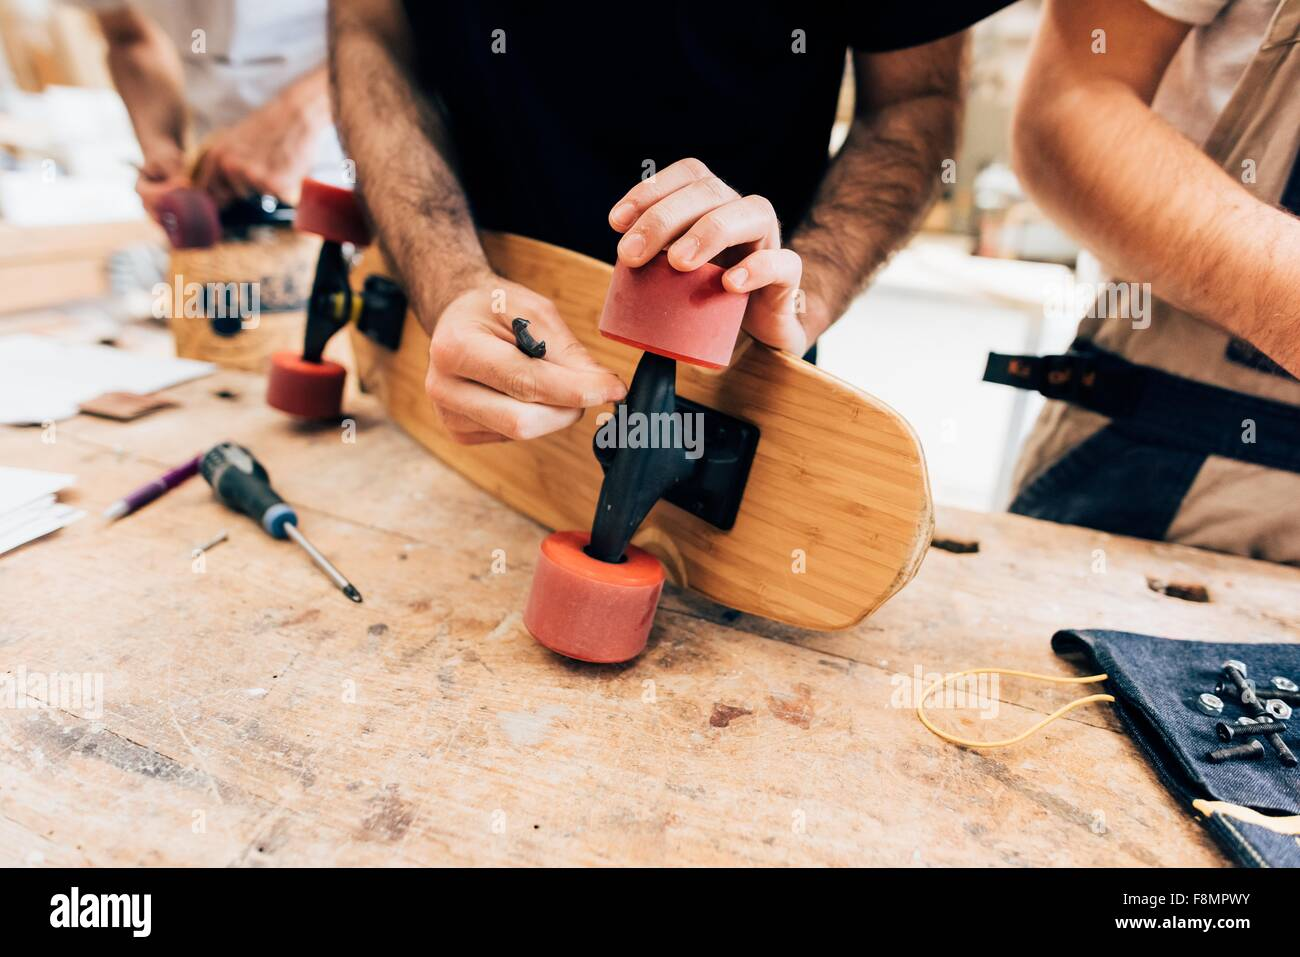 Cropped view of young men in workshop attaching wheels to skateboard - Stock Image